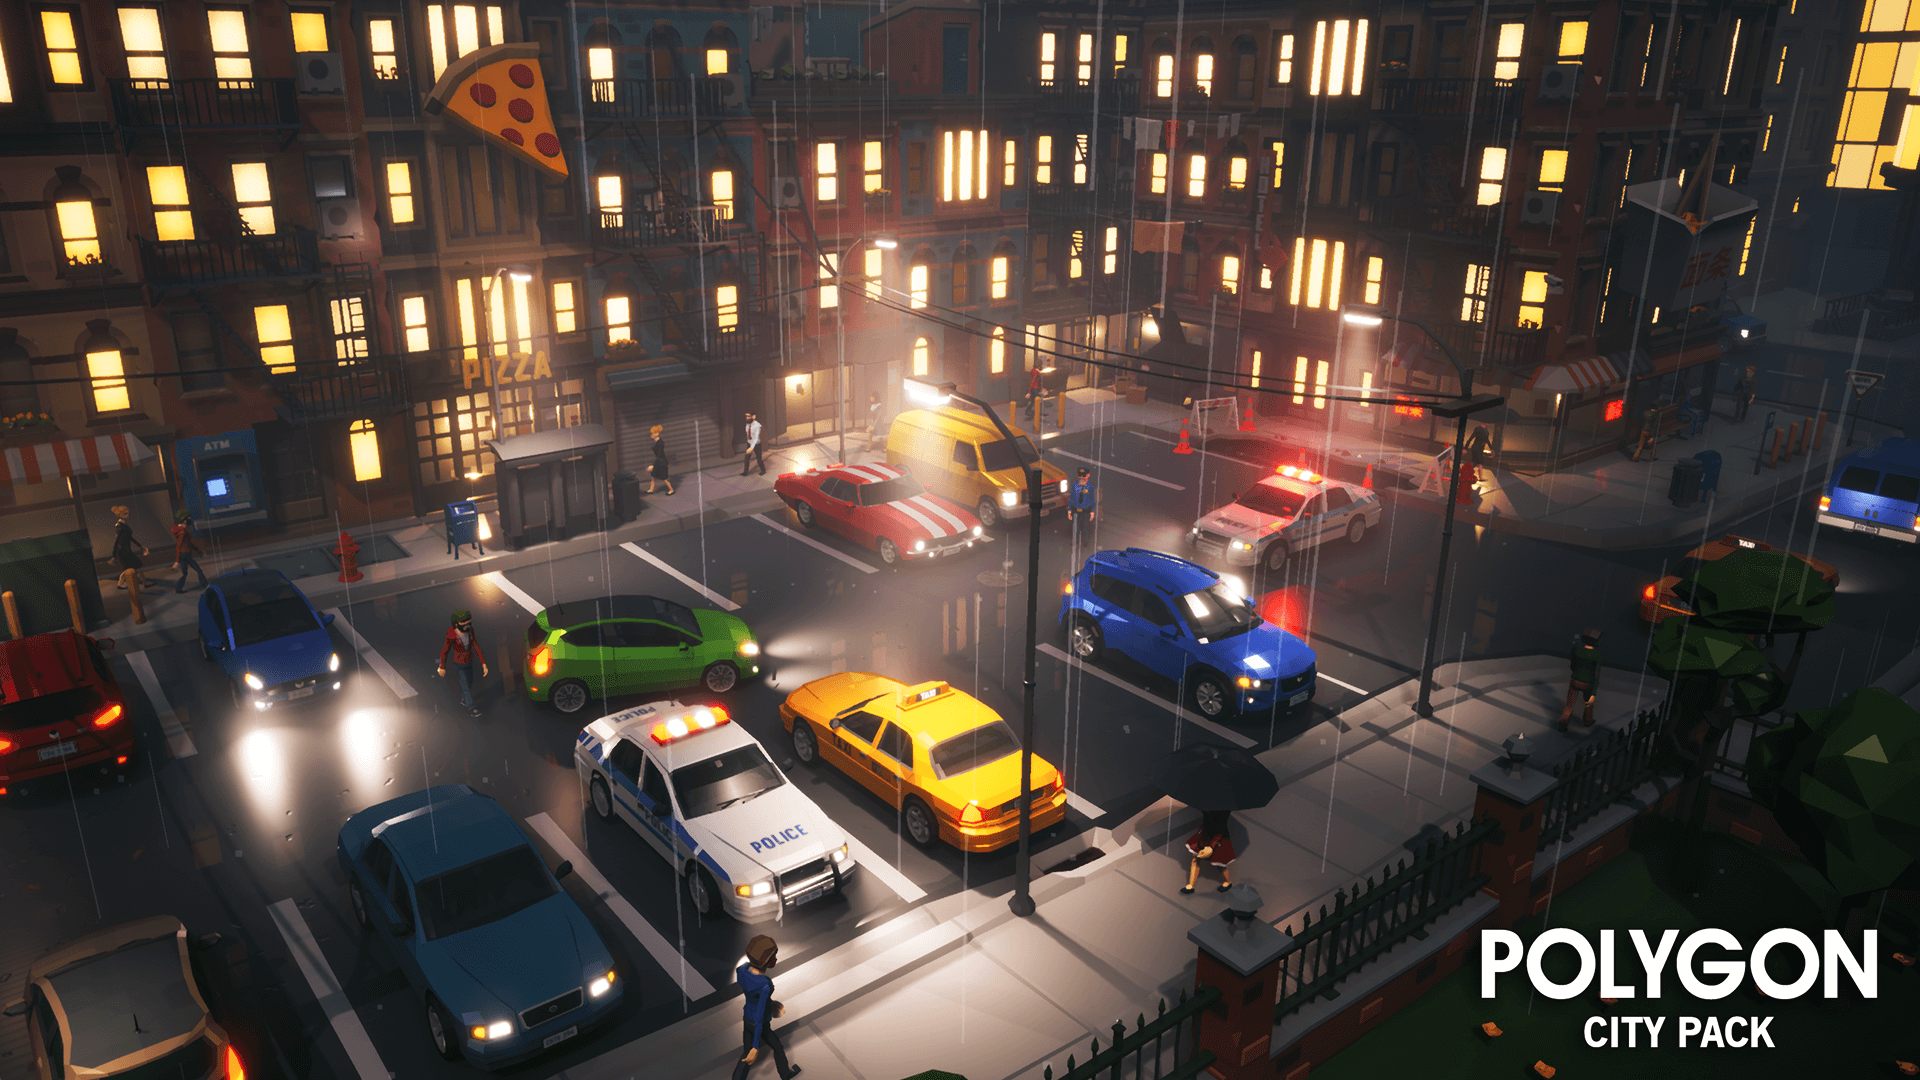 POLYGON - City Pack by Synty Studios in Environments - UE4 Marketplace